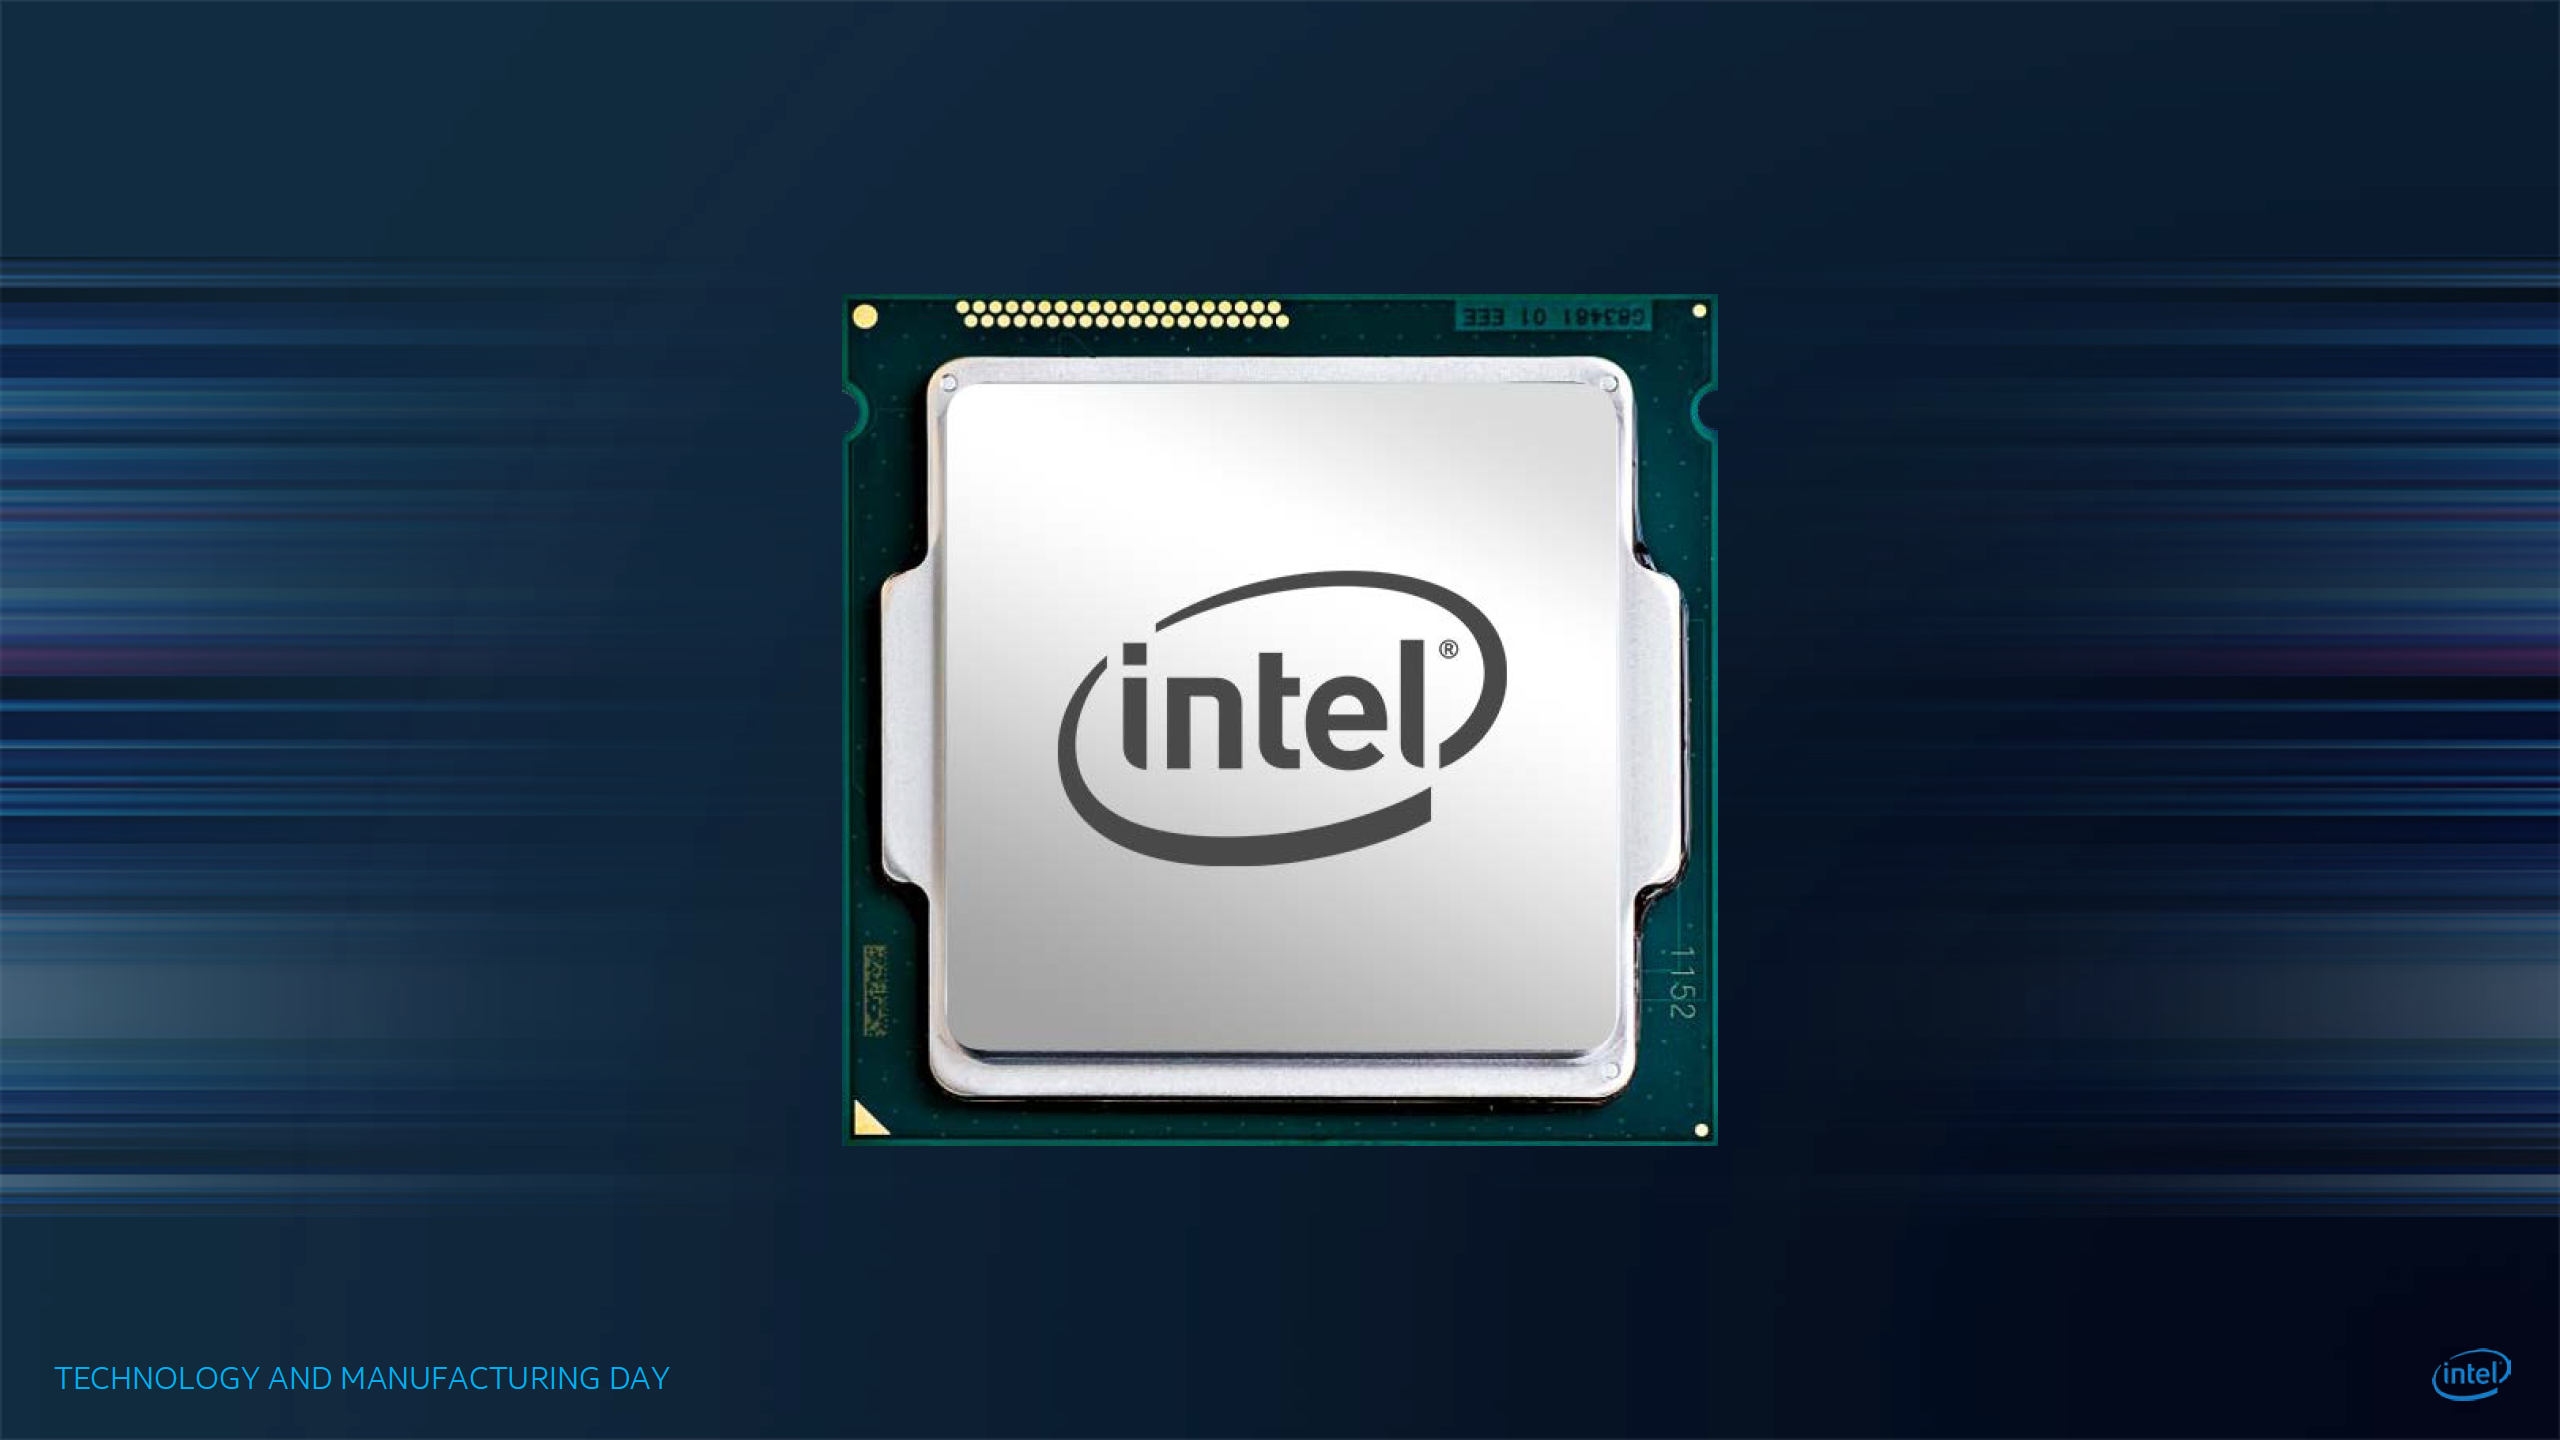 chipping away at intel part 2 Read this essay on chipping away at intel case study  after reading the first part of the case study, chipping away at intel an assessment can be made to answer.